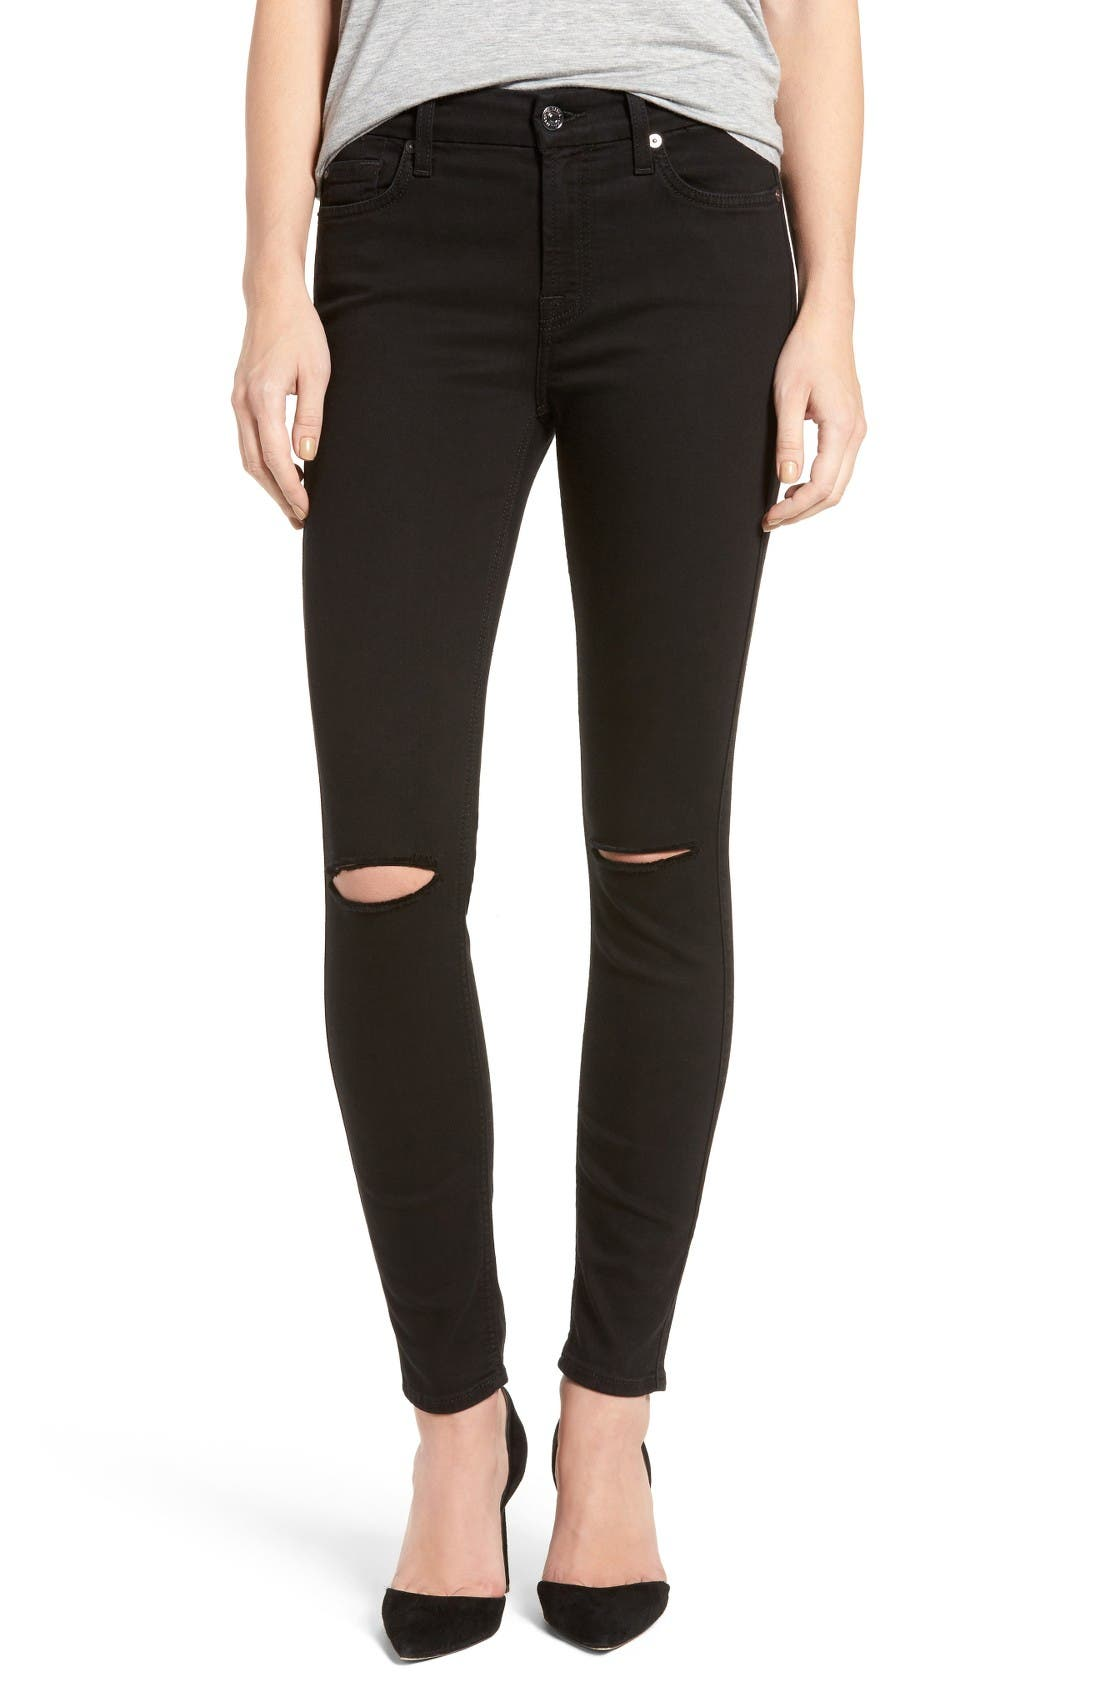 'b(air)' Ankle Skinny Jeans,                         Main,                         color, Bair Black 2